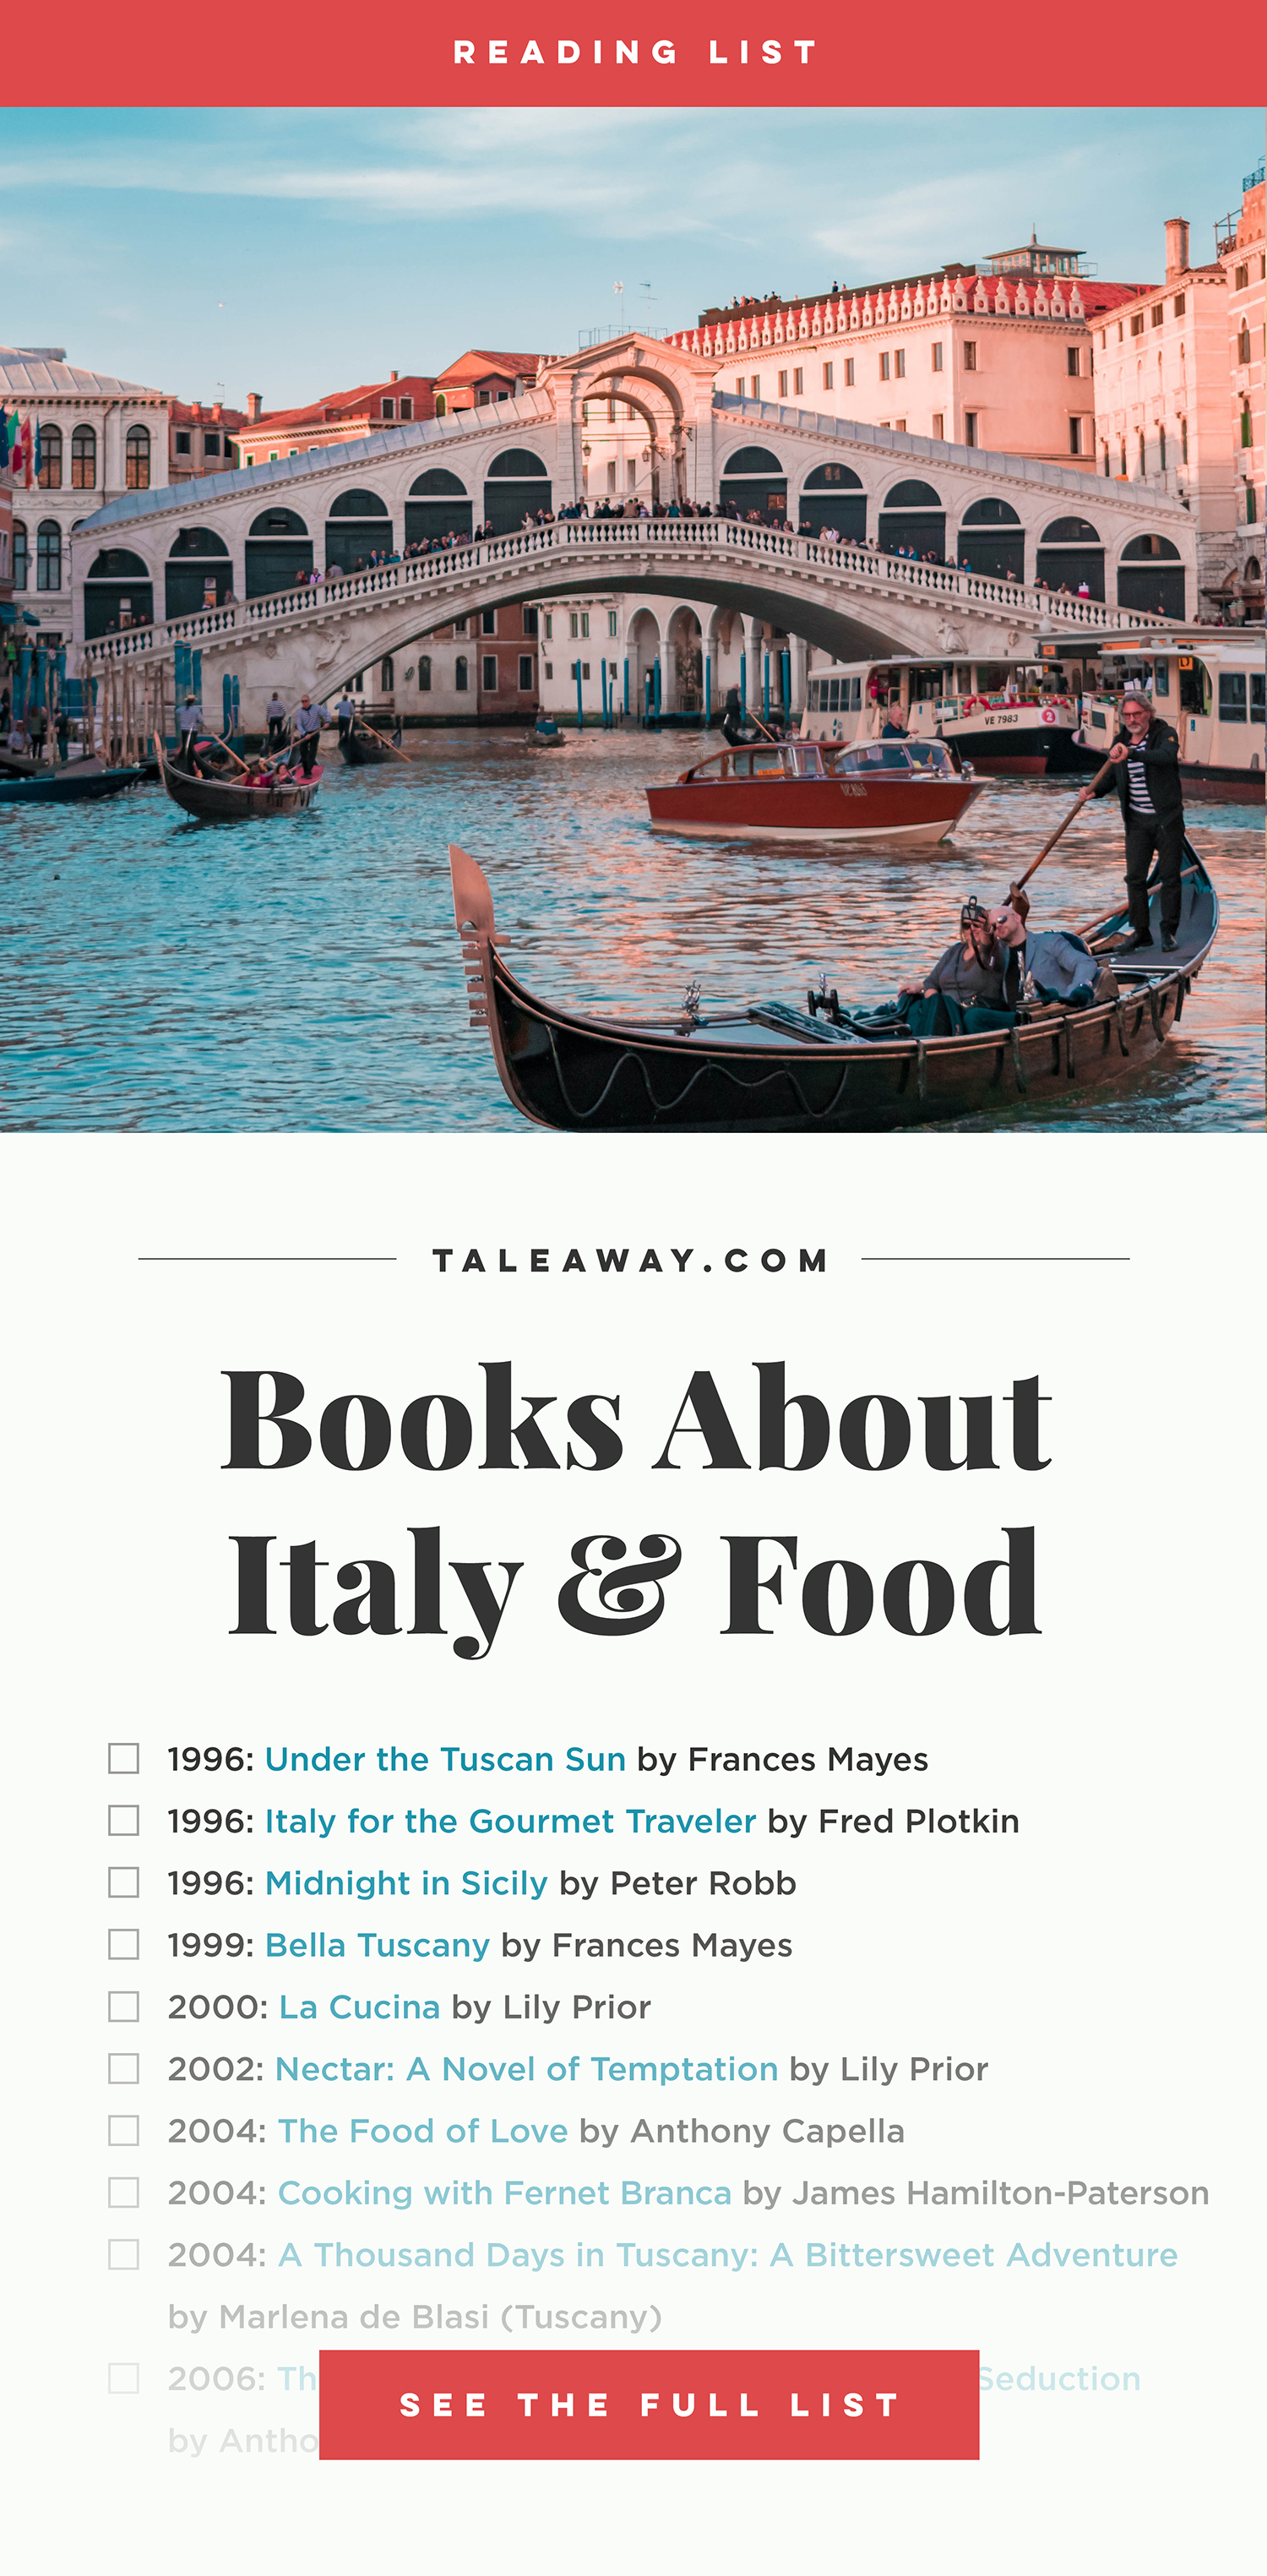 Italian Food Fiction: Books Around Italy for Food Lovers. italian food books, italy food books, italy food fiction, italy food novels, italy food, food novels, food fiction, best food books, books with food, novels about food, books for food lovers, food in literature, books set in italy, italy reading challenge, italy books, italy novels, italy fiction, italy travel, italy vacation, italy food literature, books about italy, books for foodies, travel food italy, gifts for foodies, italy and food, food memoirs, cooking memoir, italy reading, italy reading list